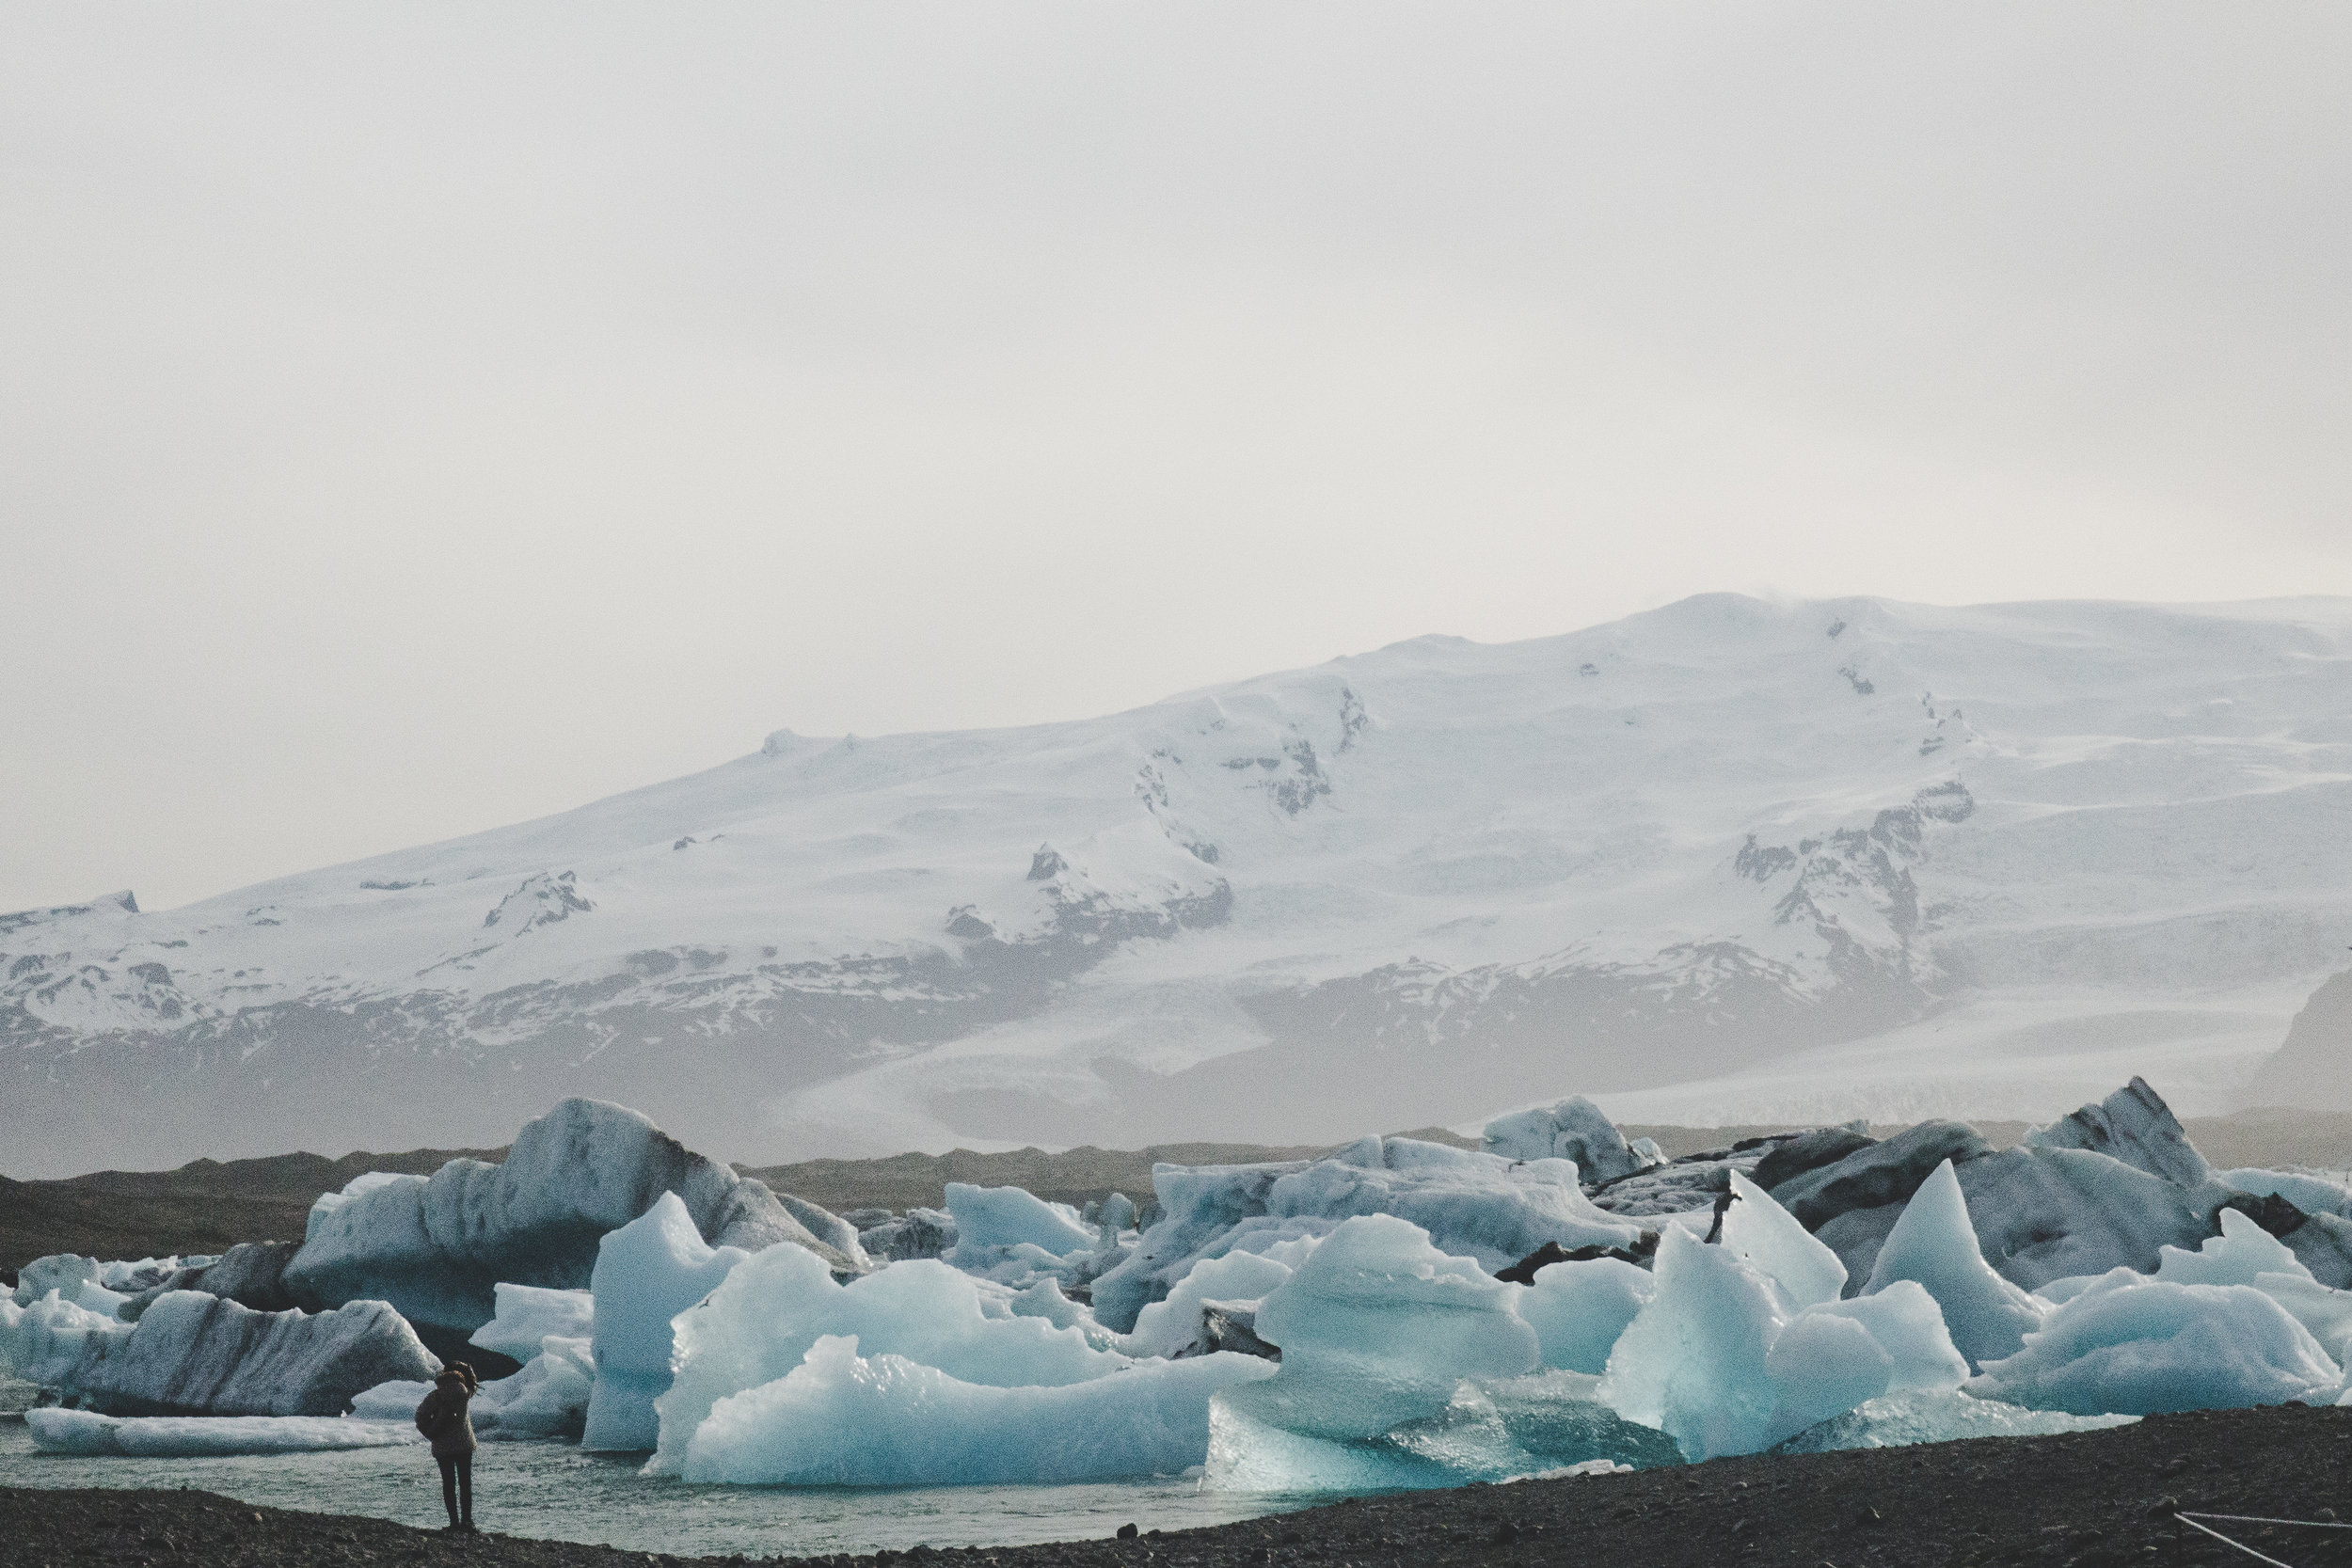 Jökulsárlón with the Breiðamerkurjökull glacier in background